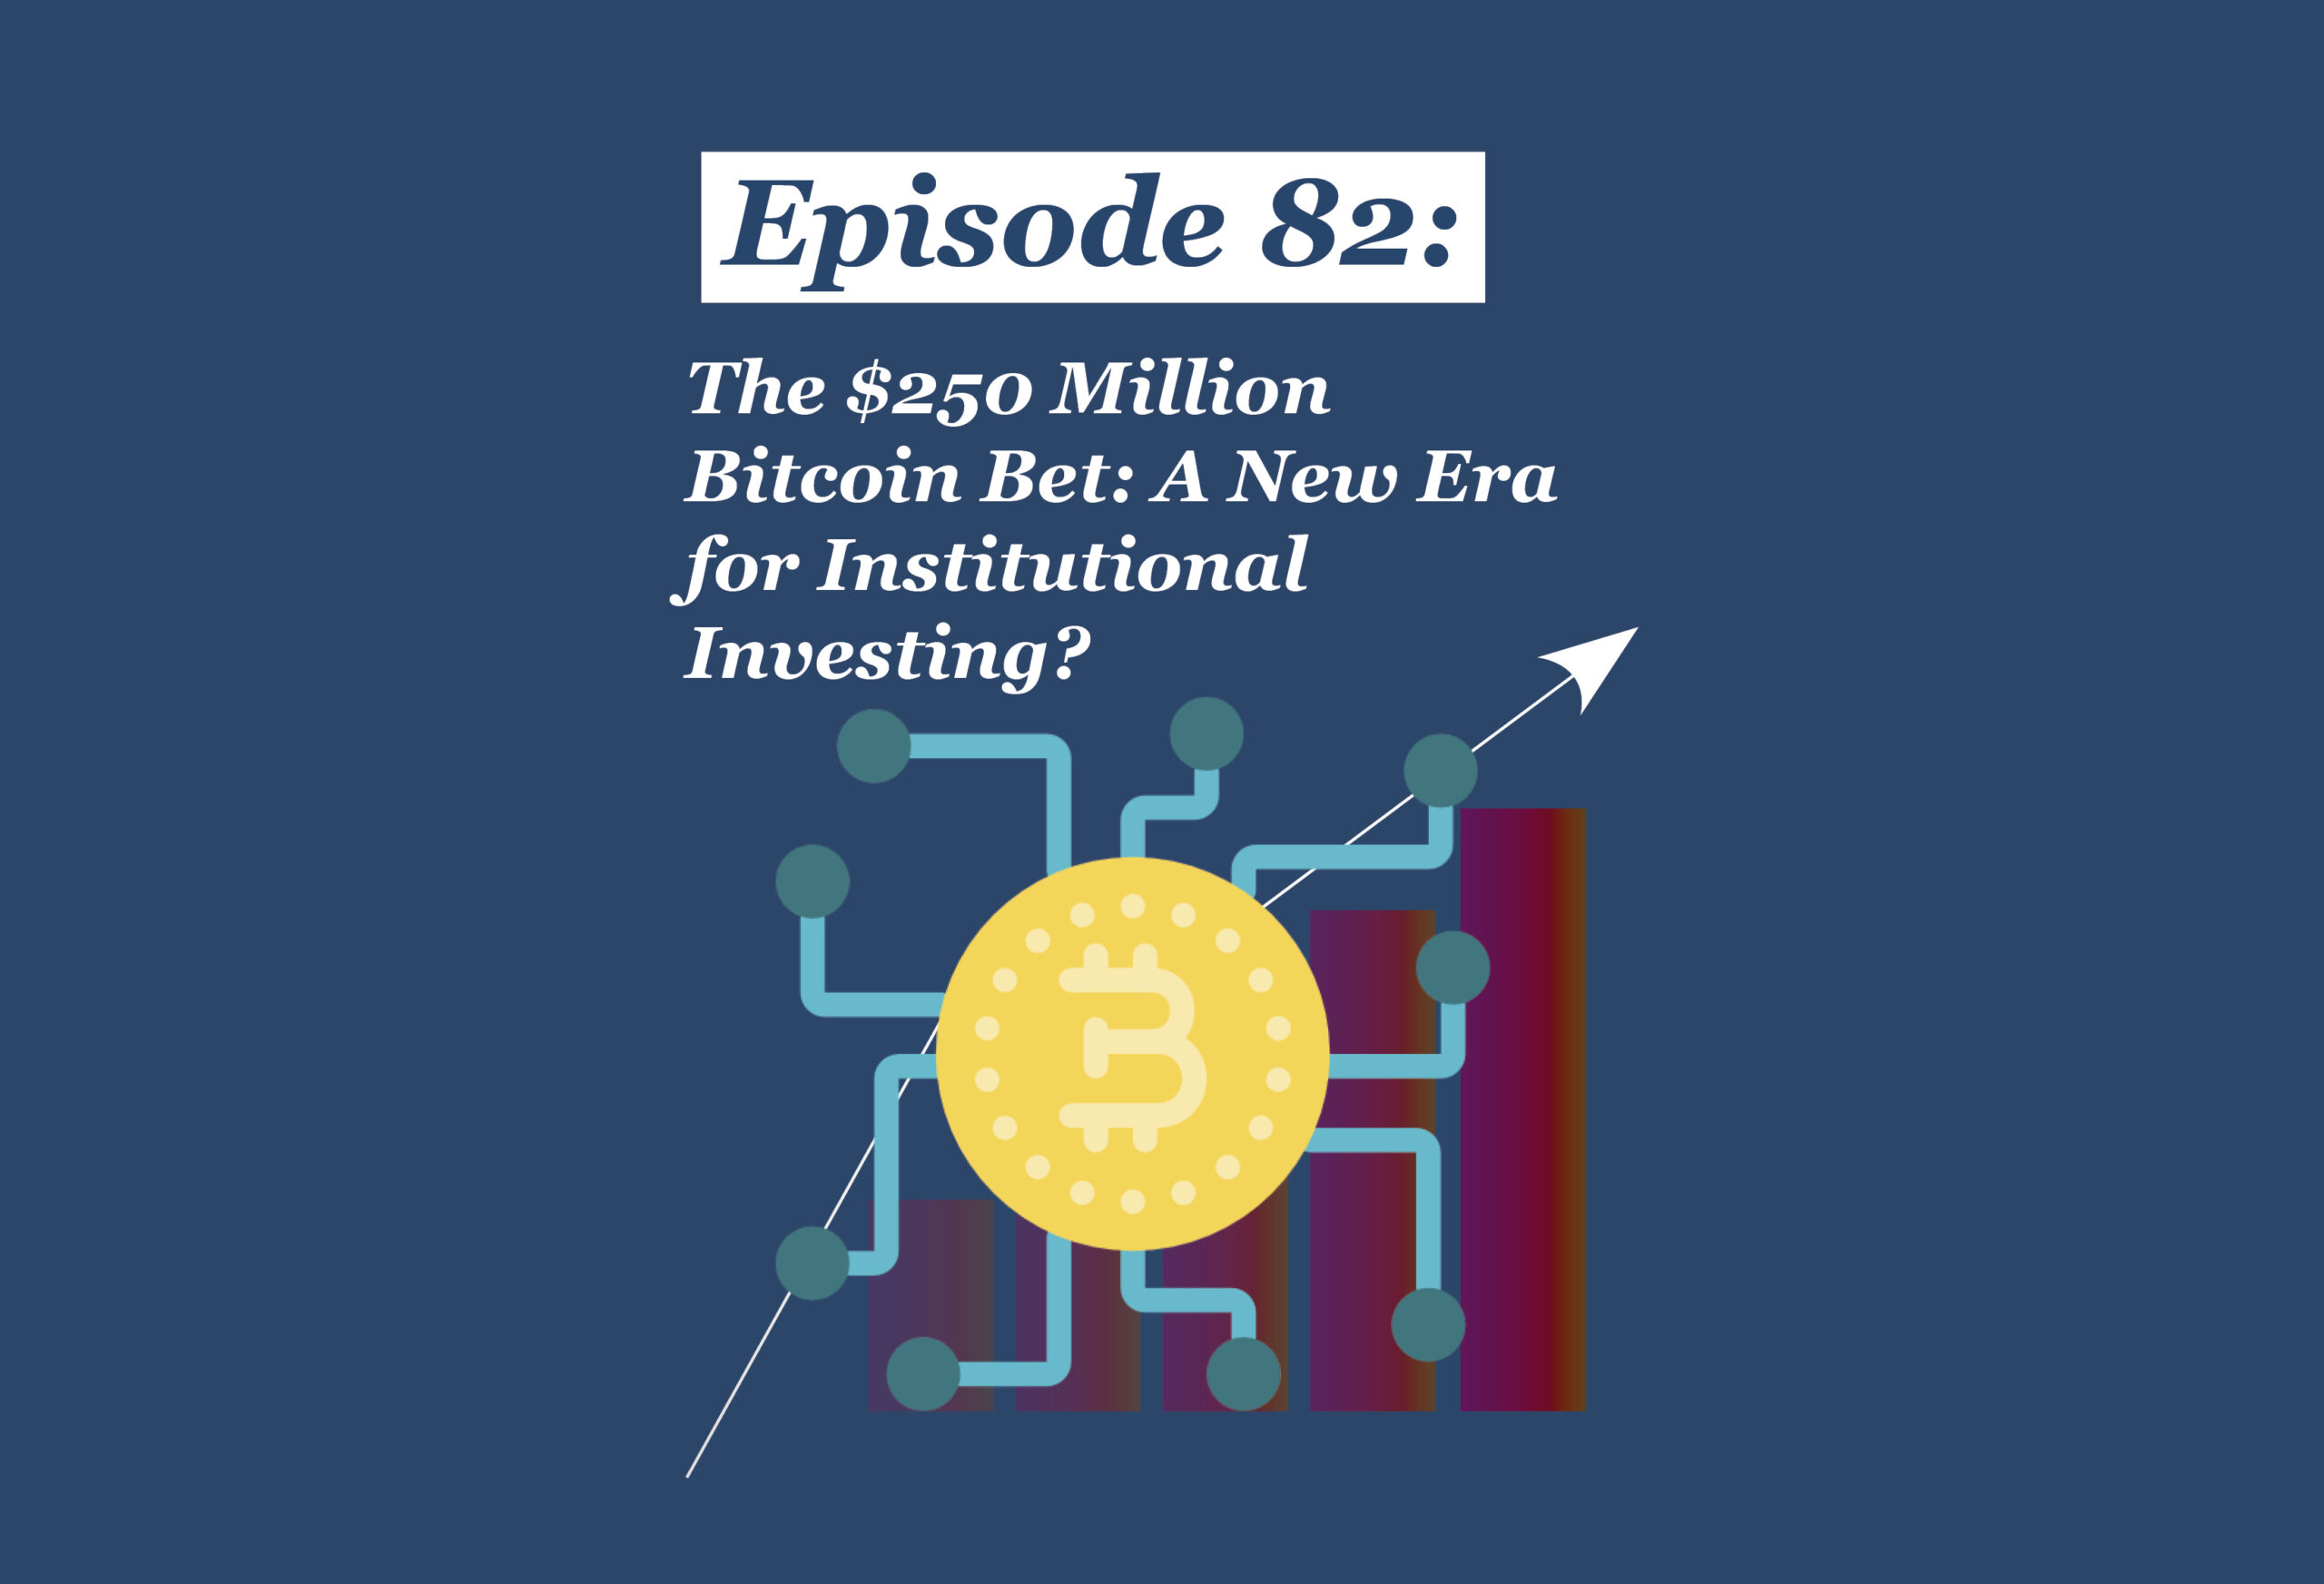 Absolute Return Podcast #82: The $250 Million Bitcoin Bet: A New Era for Institutional Investing?